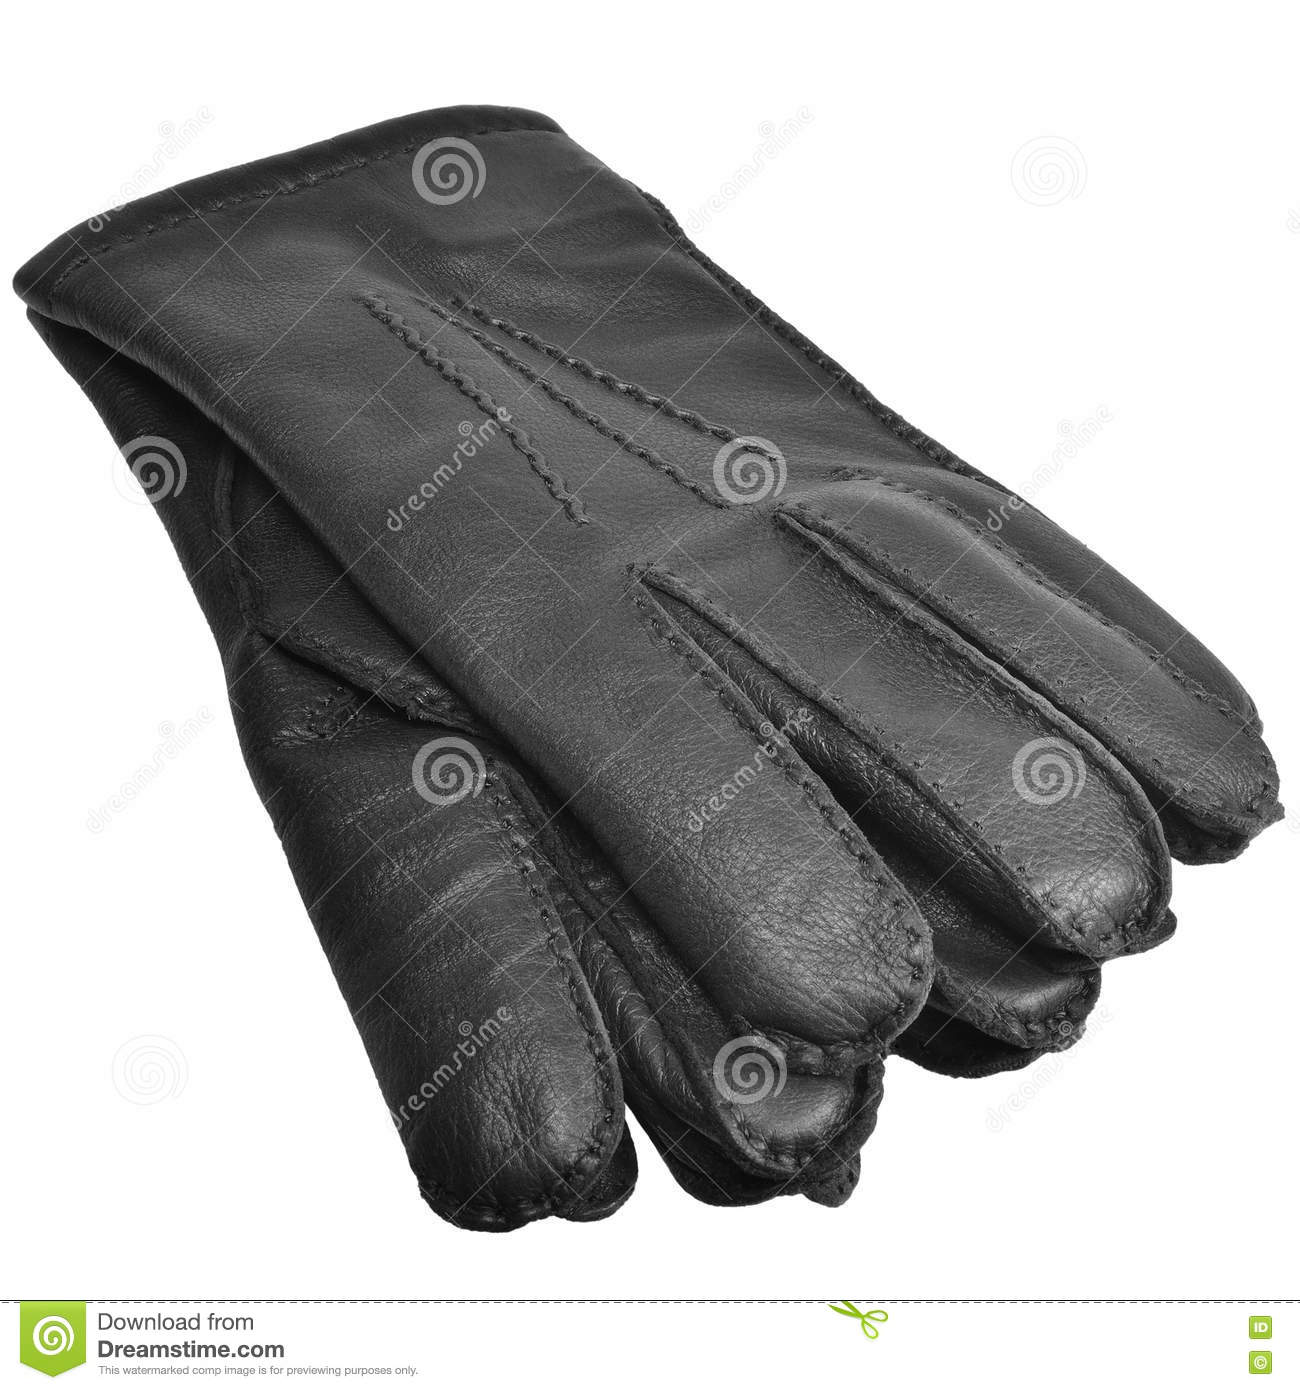 Mens deerskin gloves - Black Men Deerskin Gloves Large Detailed Isolated Men S Fine Grain Deer Leather Glove Pair Macro